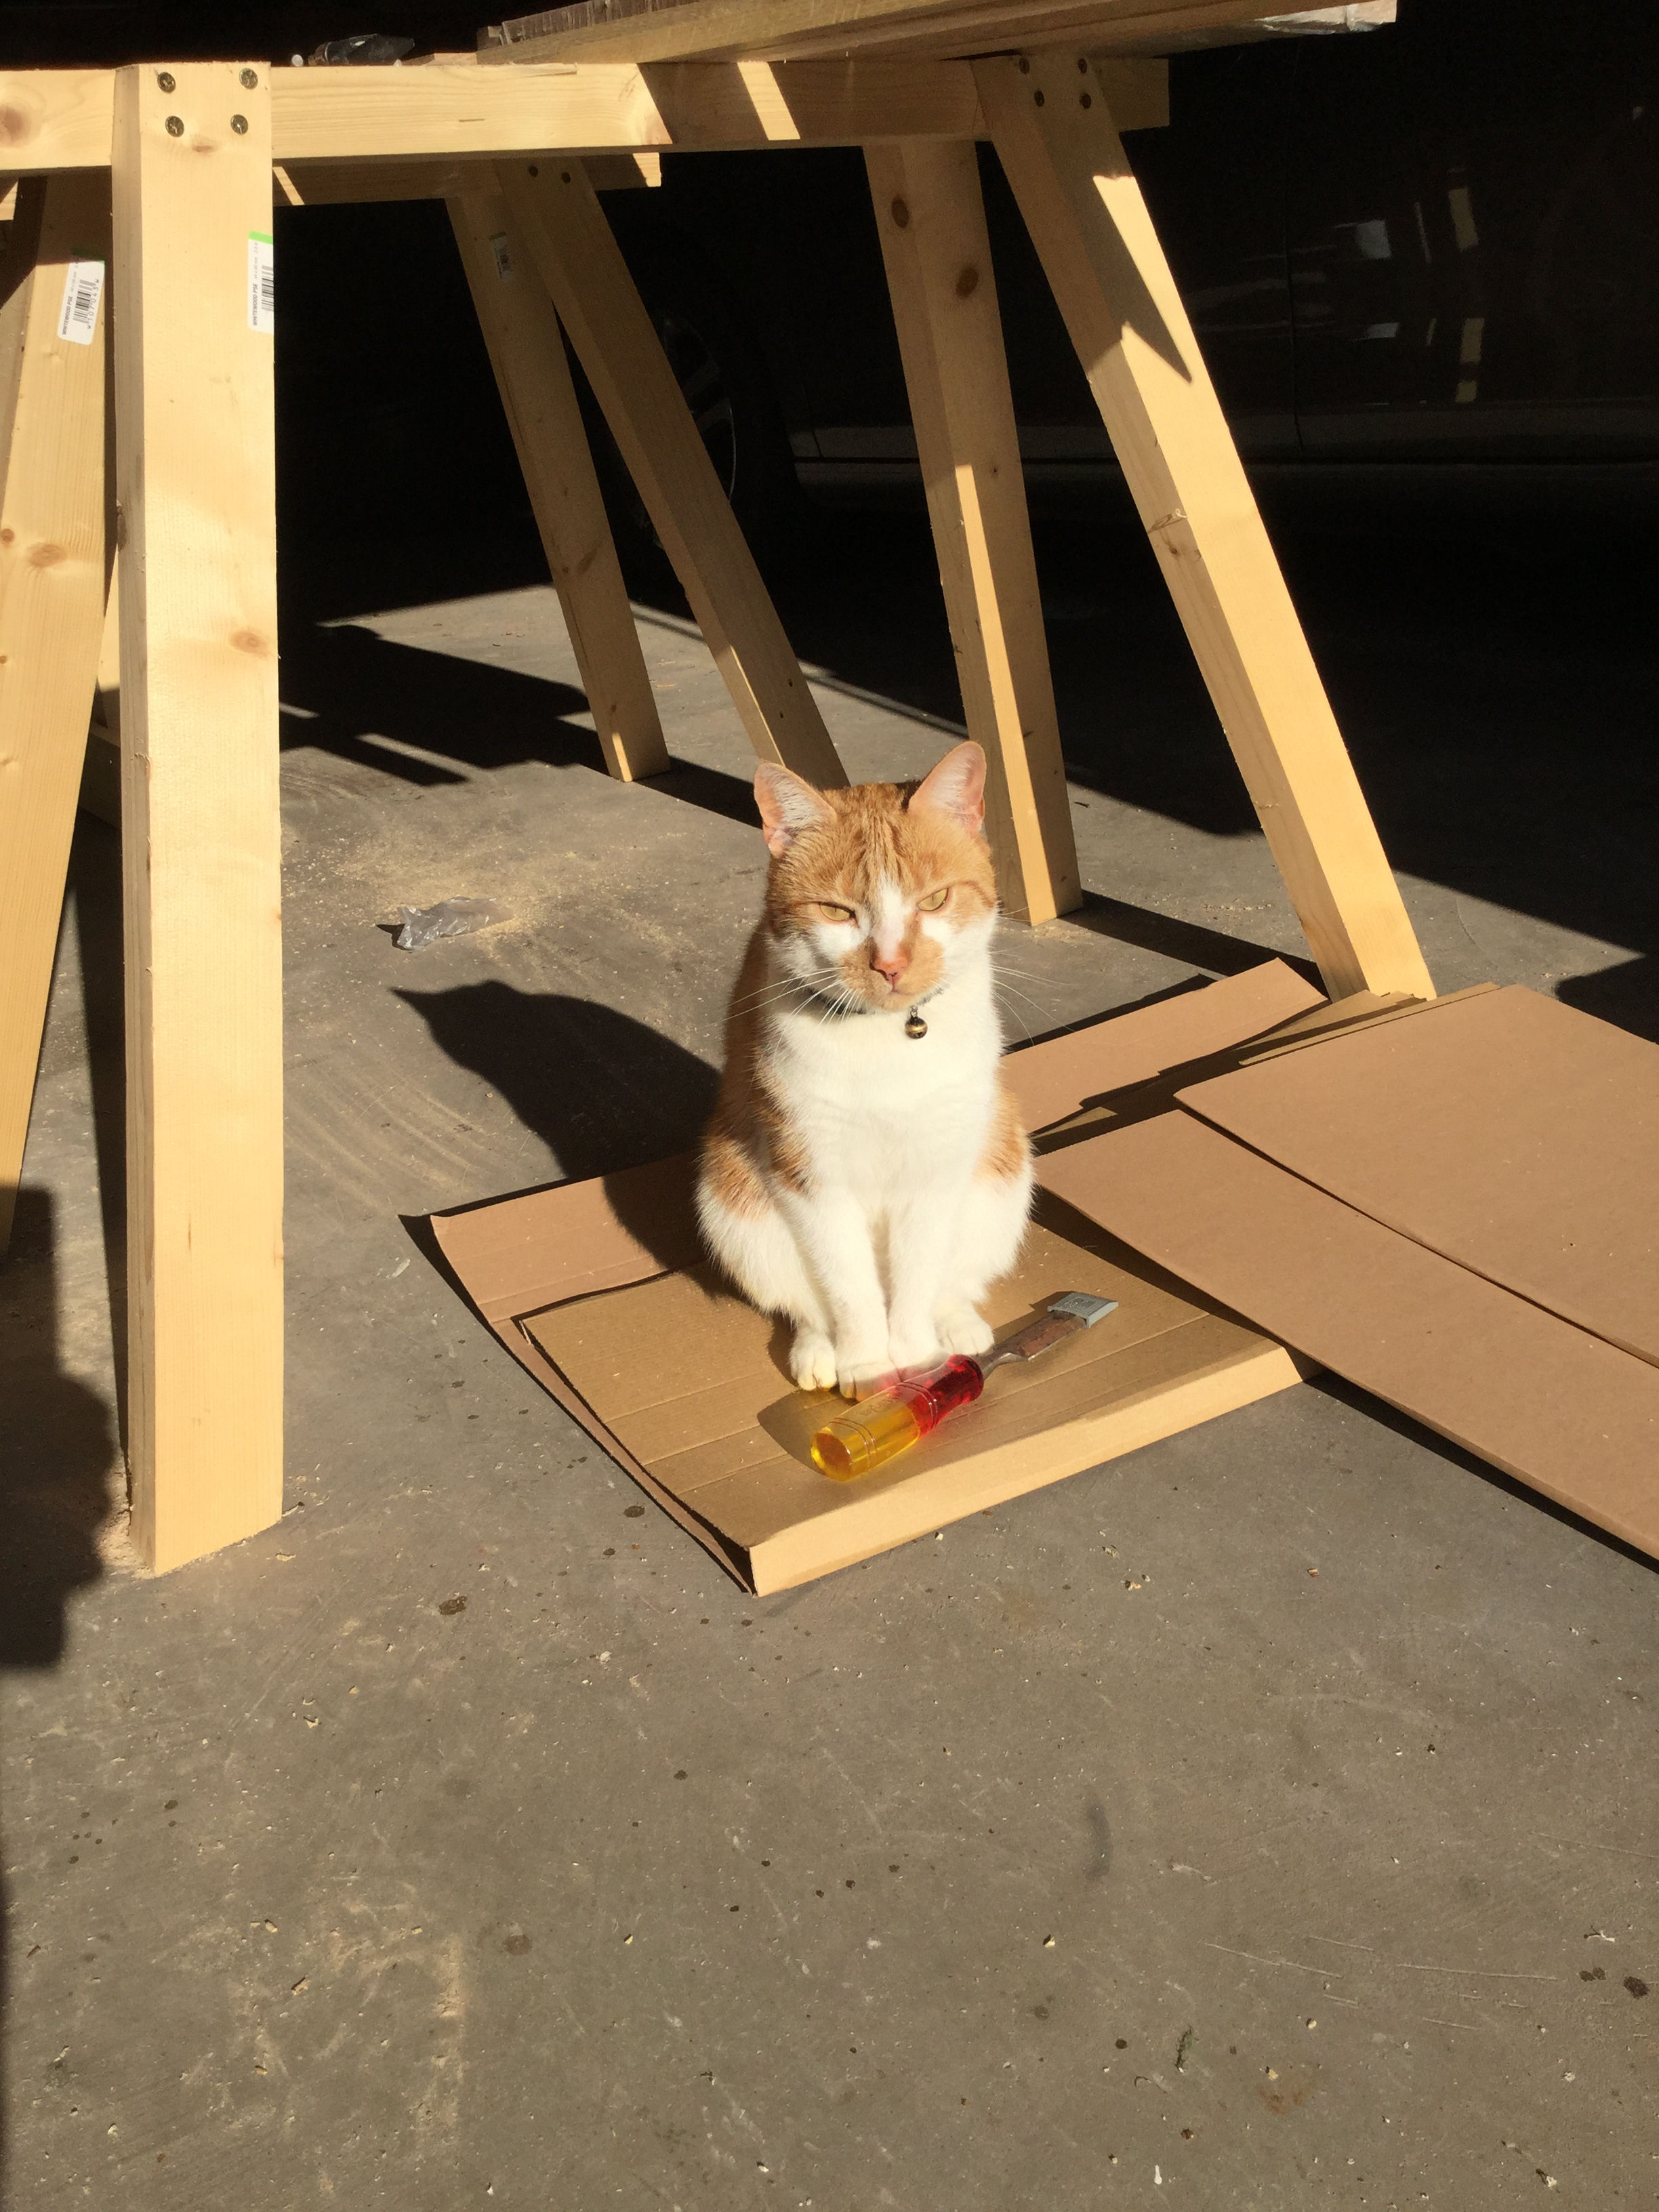 Bilbo in training to be a carpenter